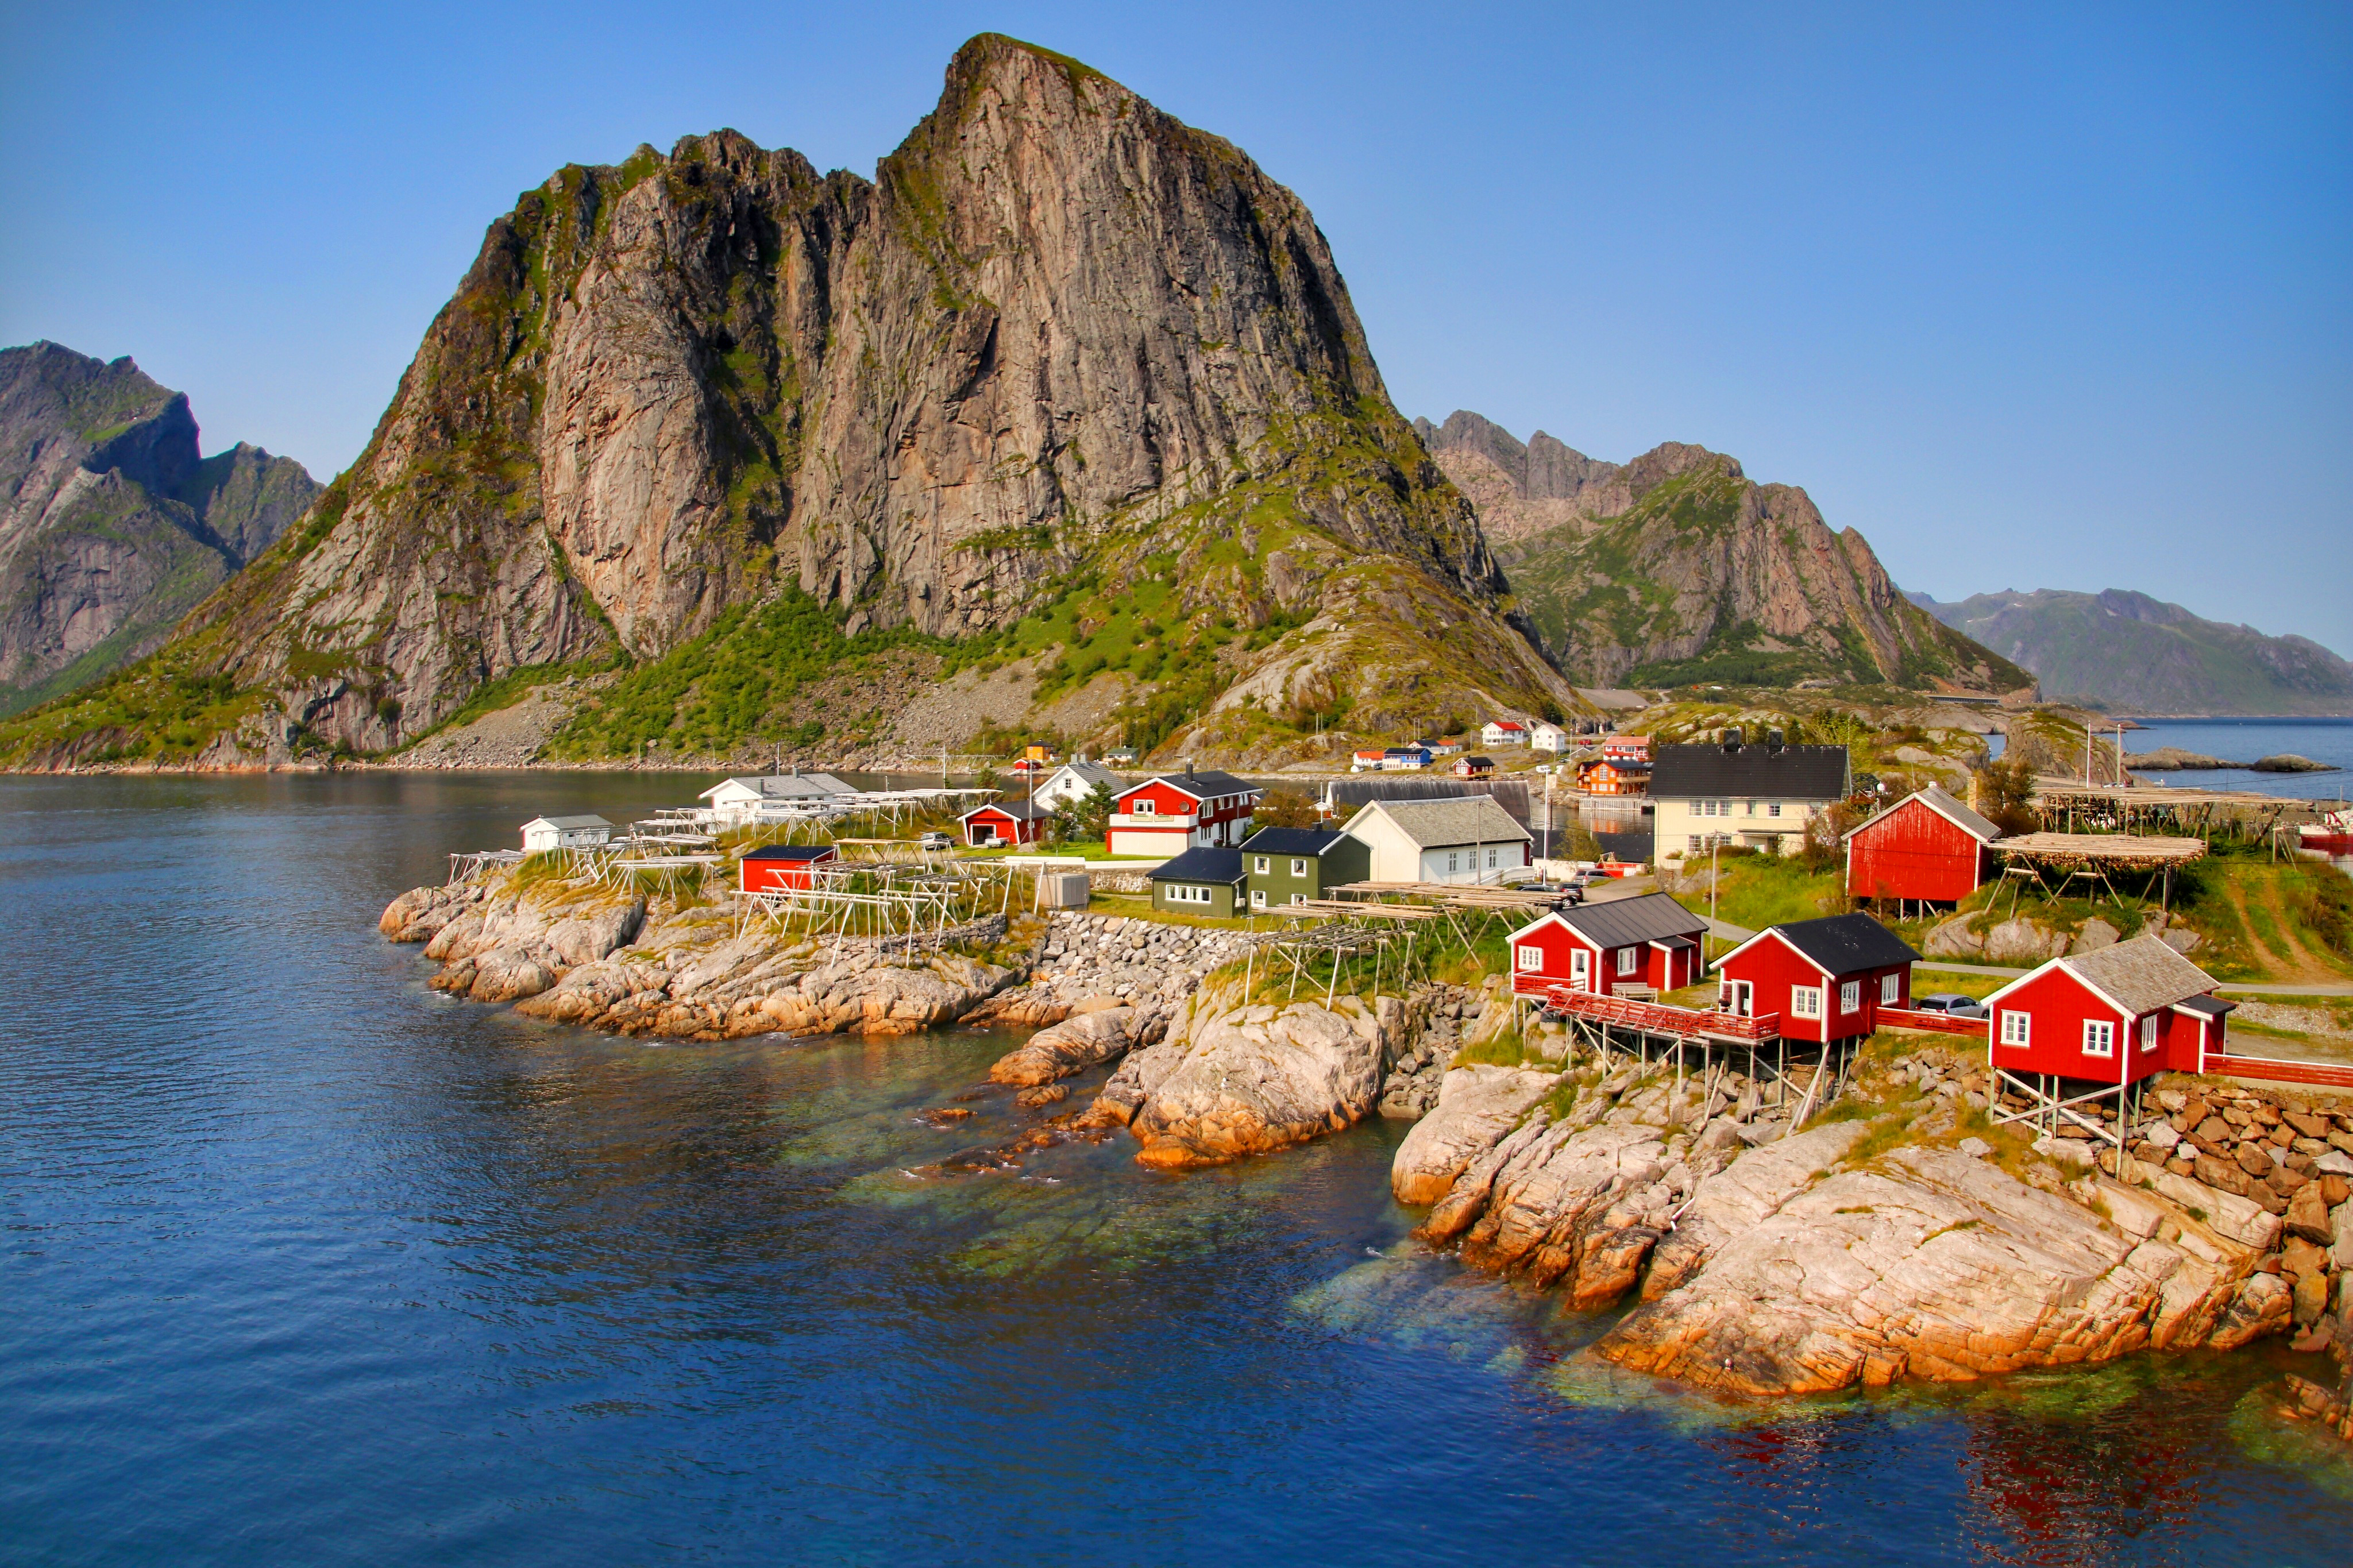 Hamnoy lofoten, another beautiful place in Norway